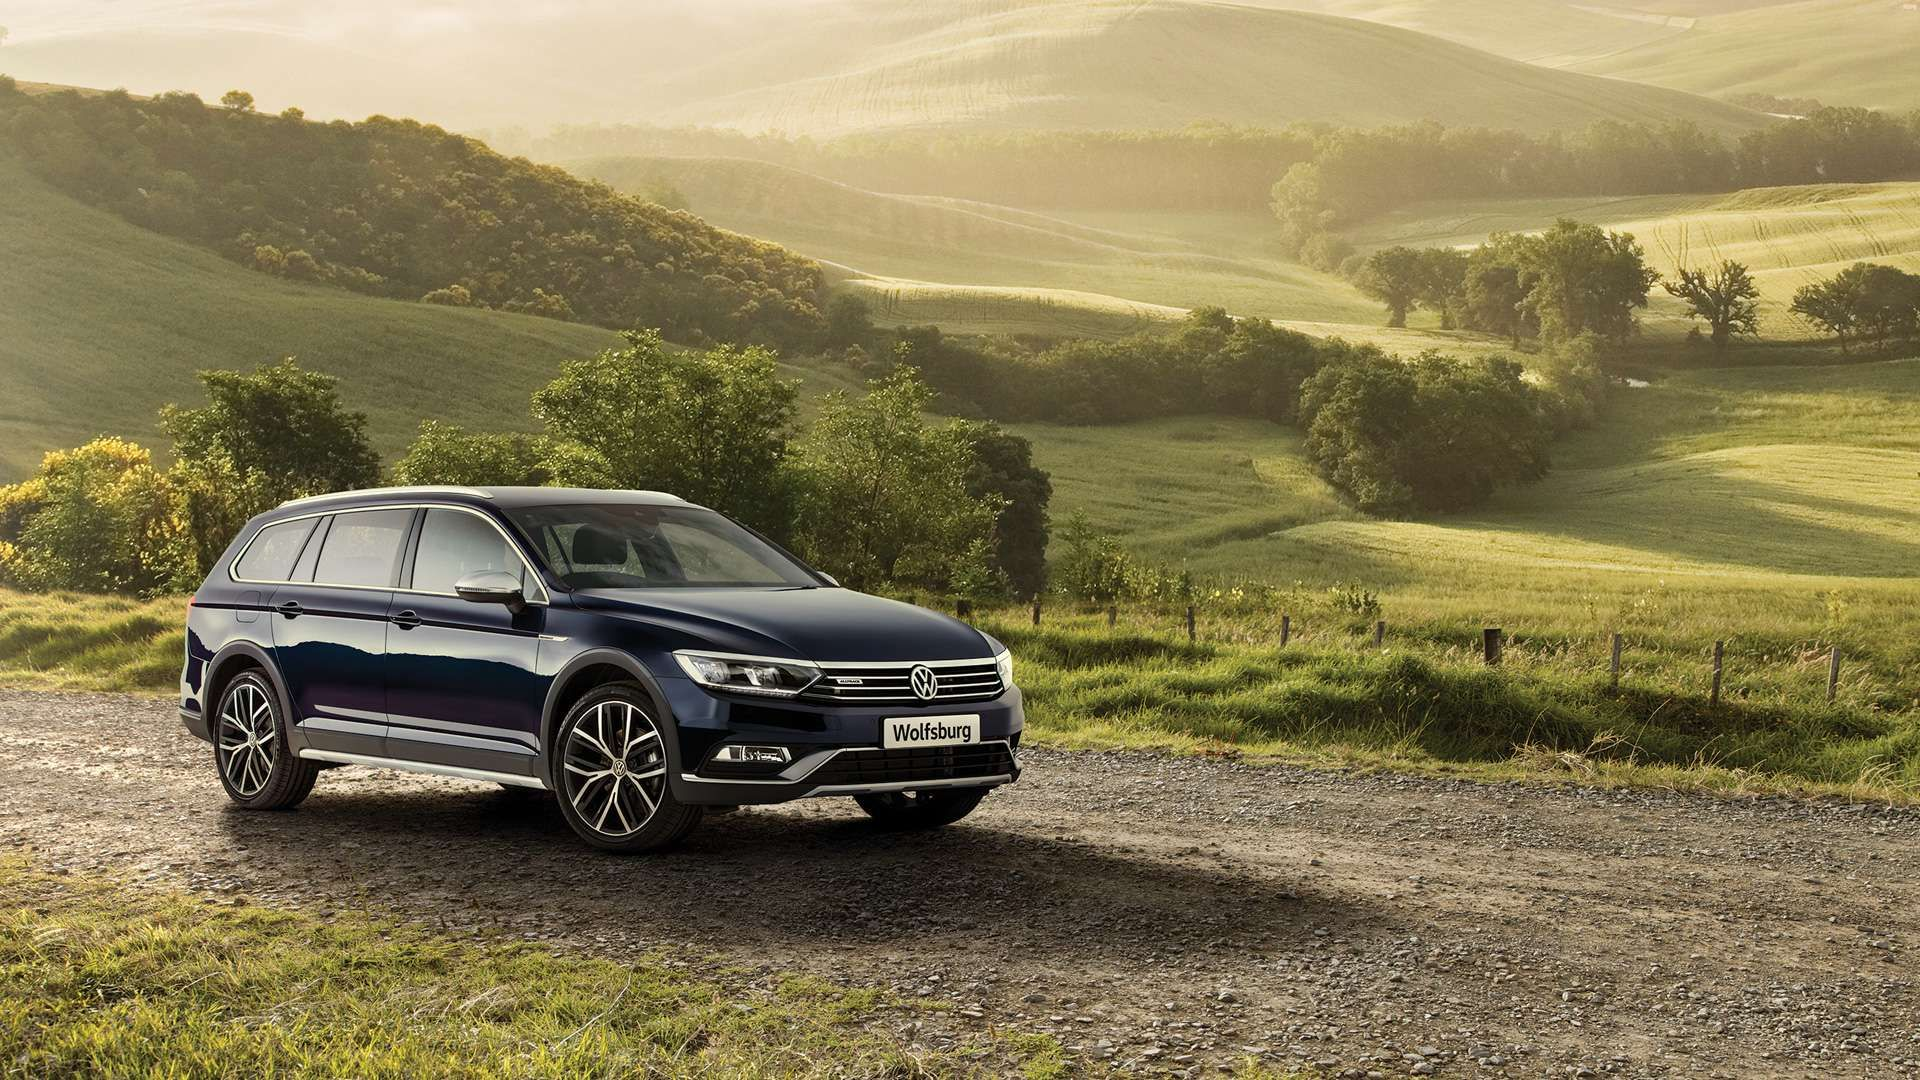 Atlantic Blue Metallic Passat Alltrack Wolfsburg Parked on mountains